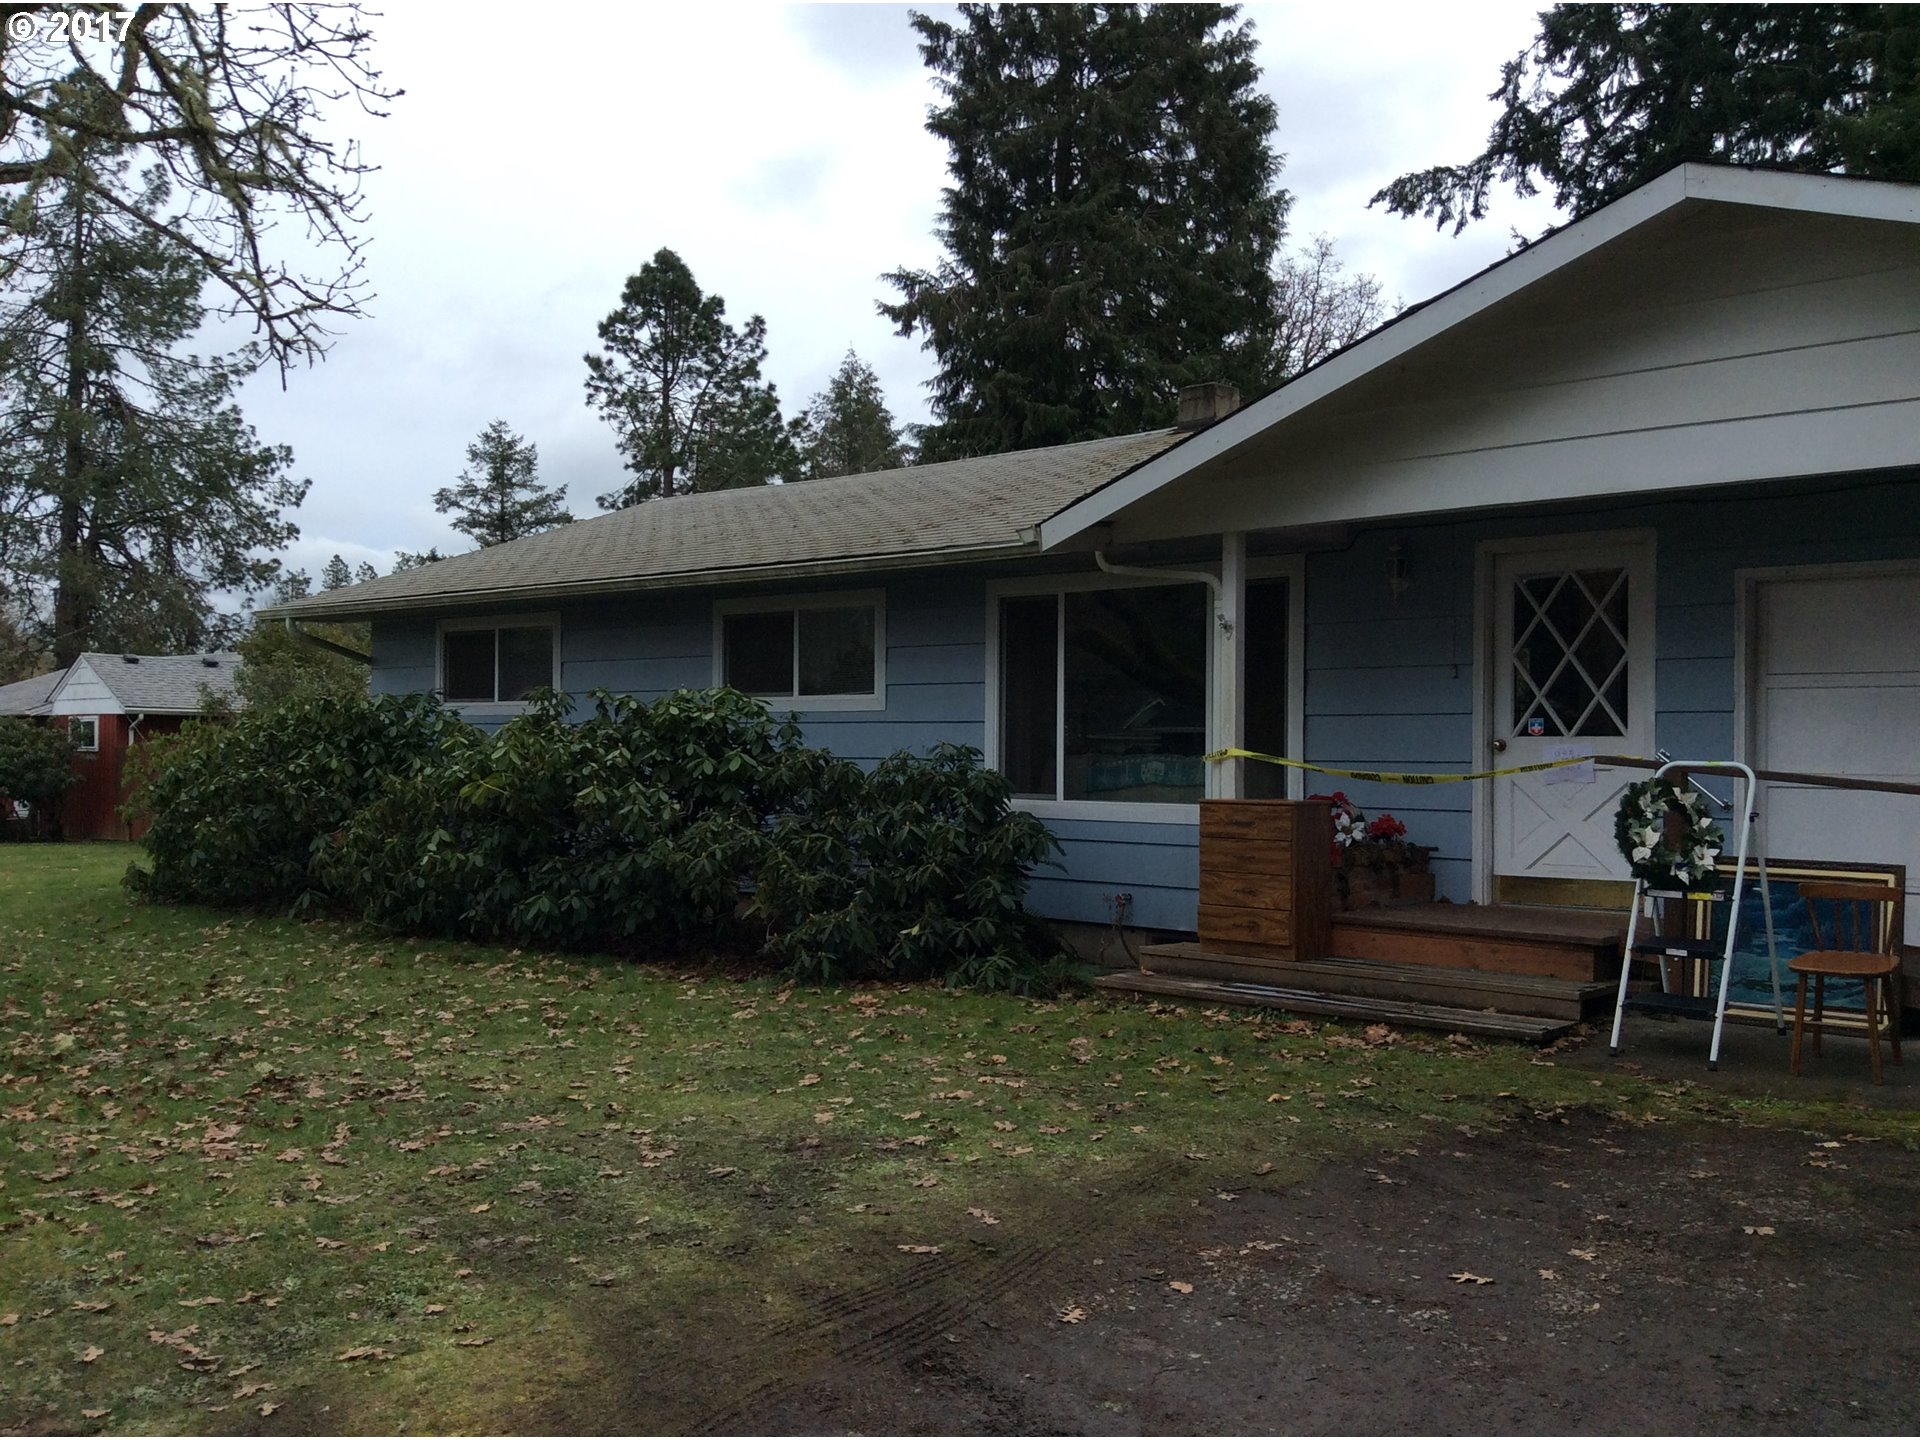 25336 E HUNTER RD, Veneta, OR 97487